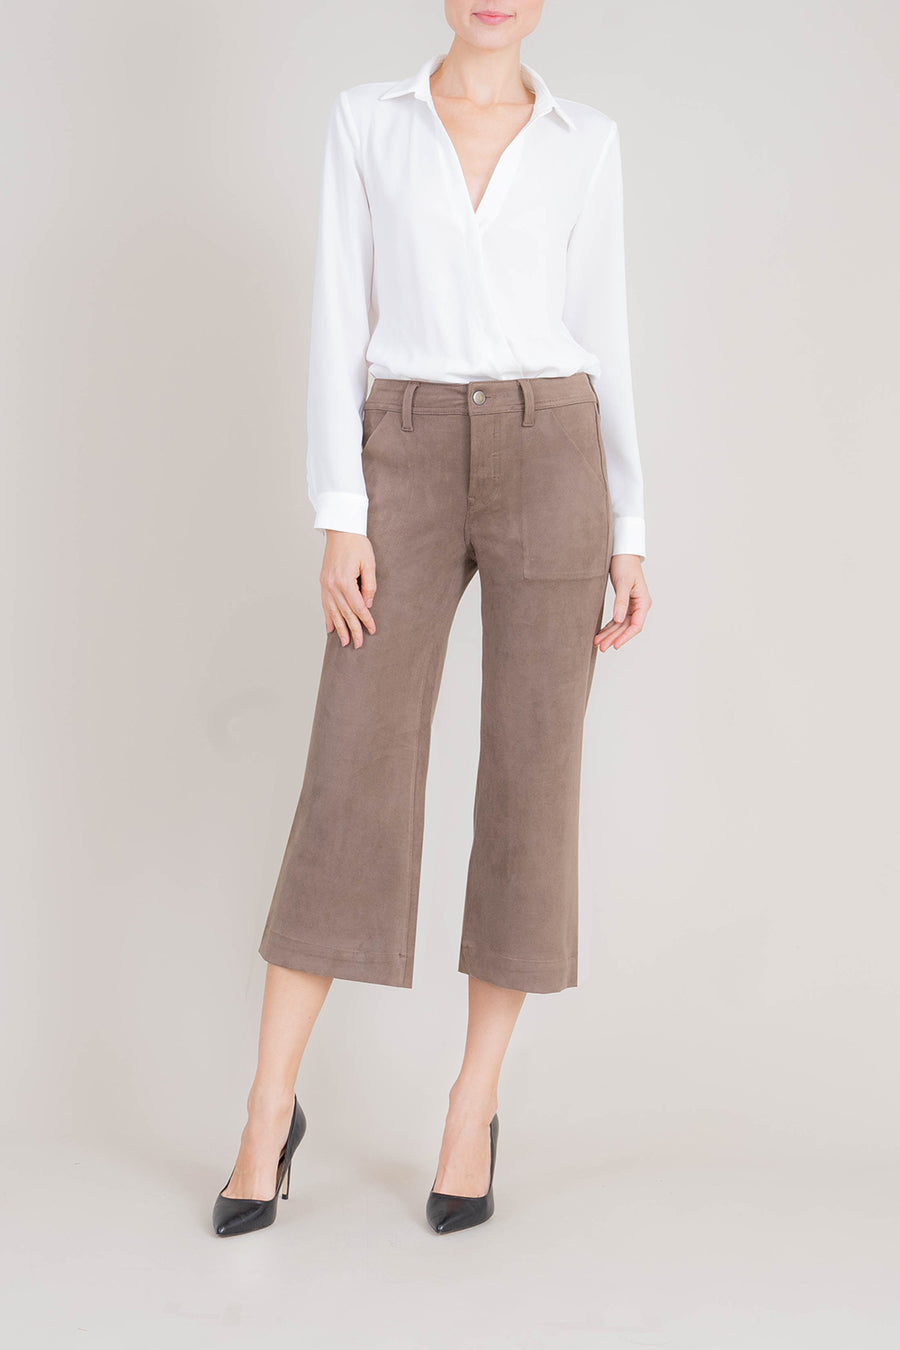 Sally Wide Leg Crop - level99jeans